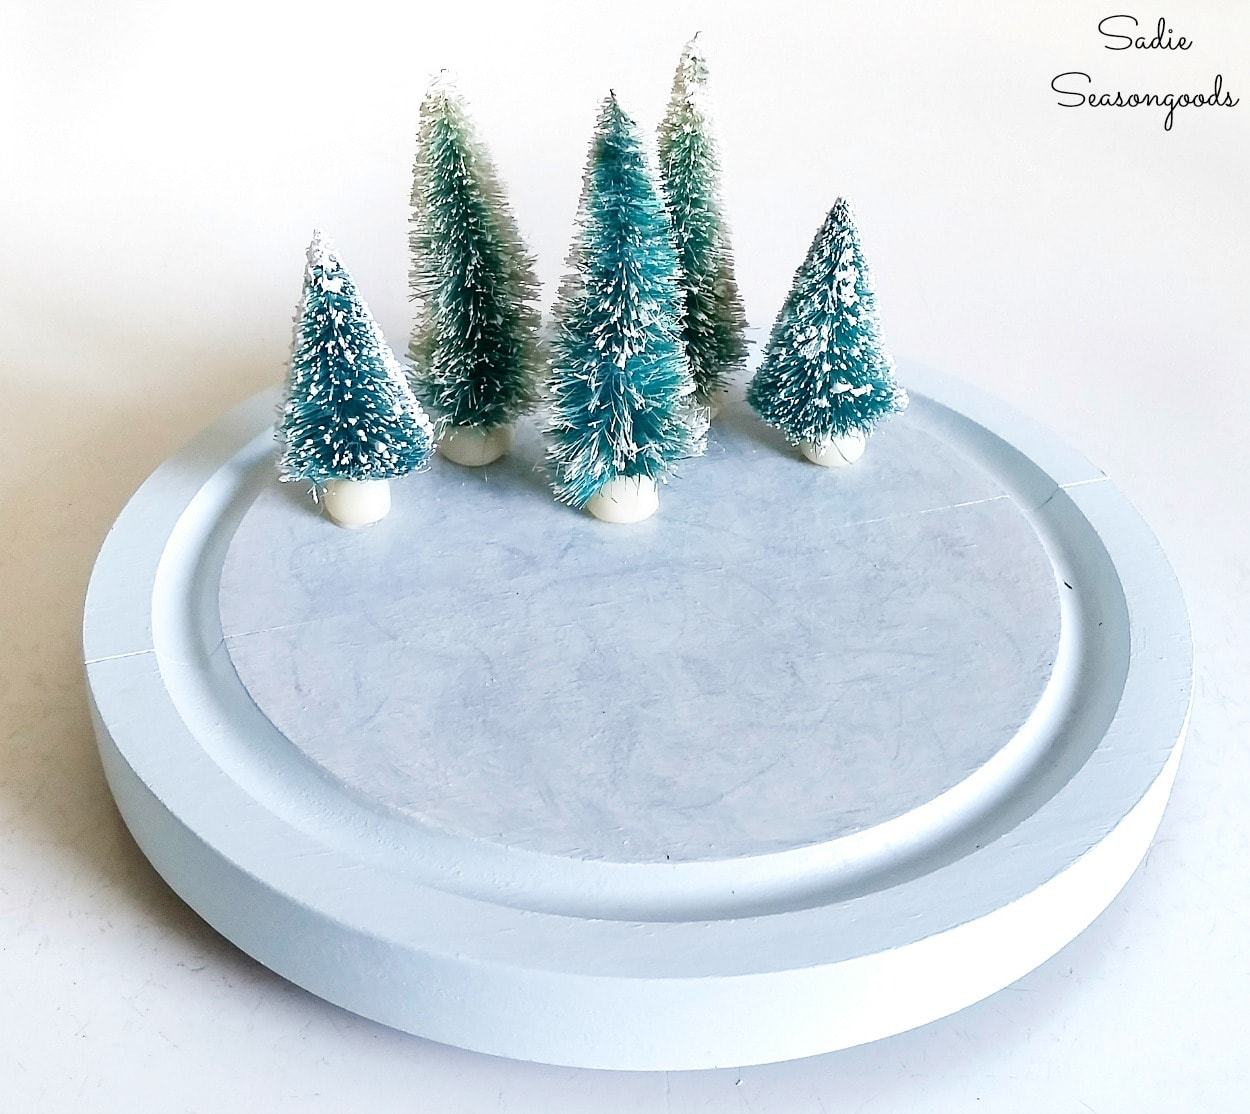 Vintage bottle brush trees for a winter Christmas scene